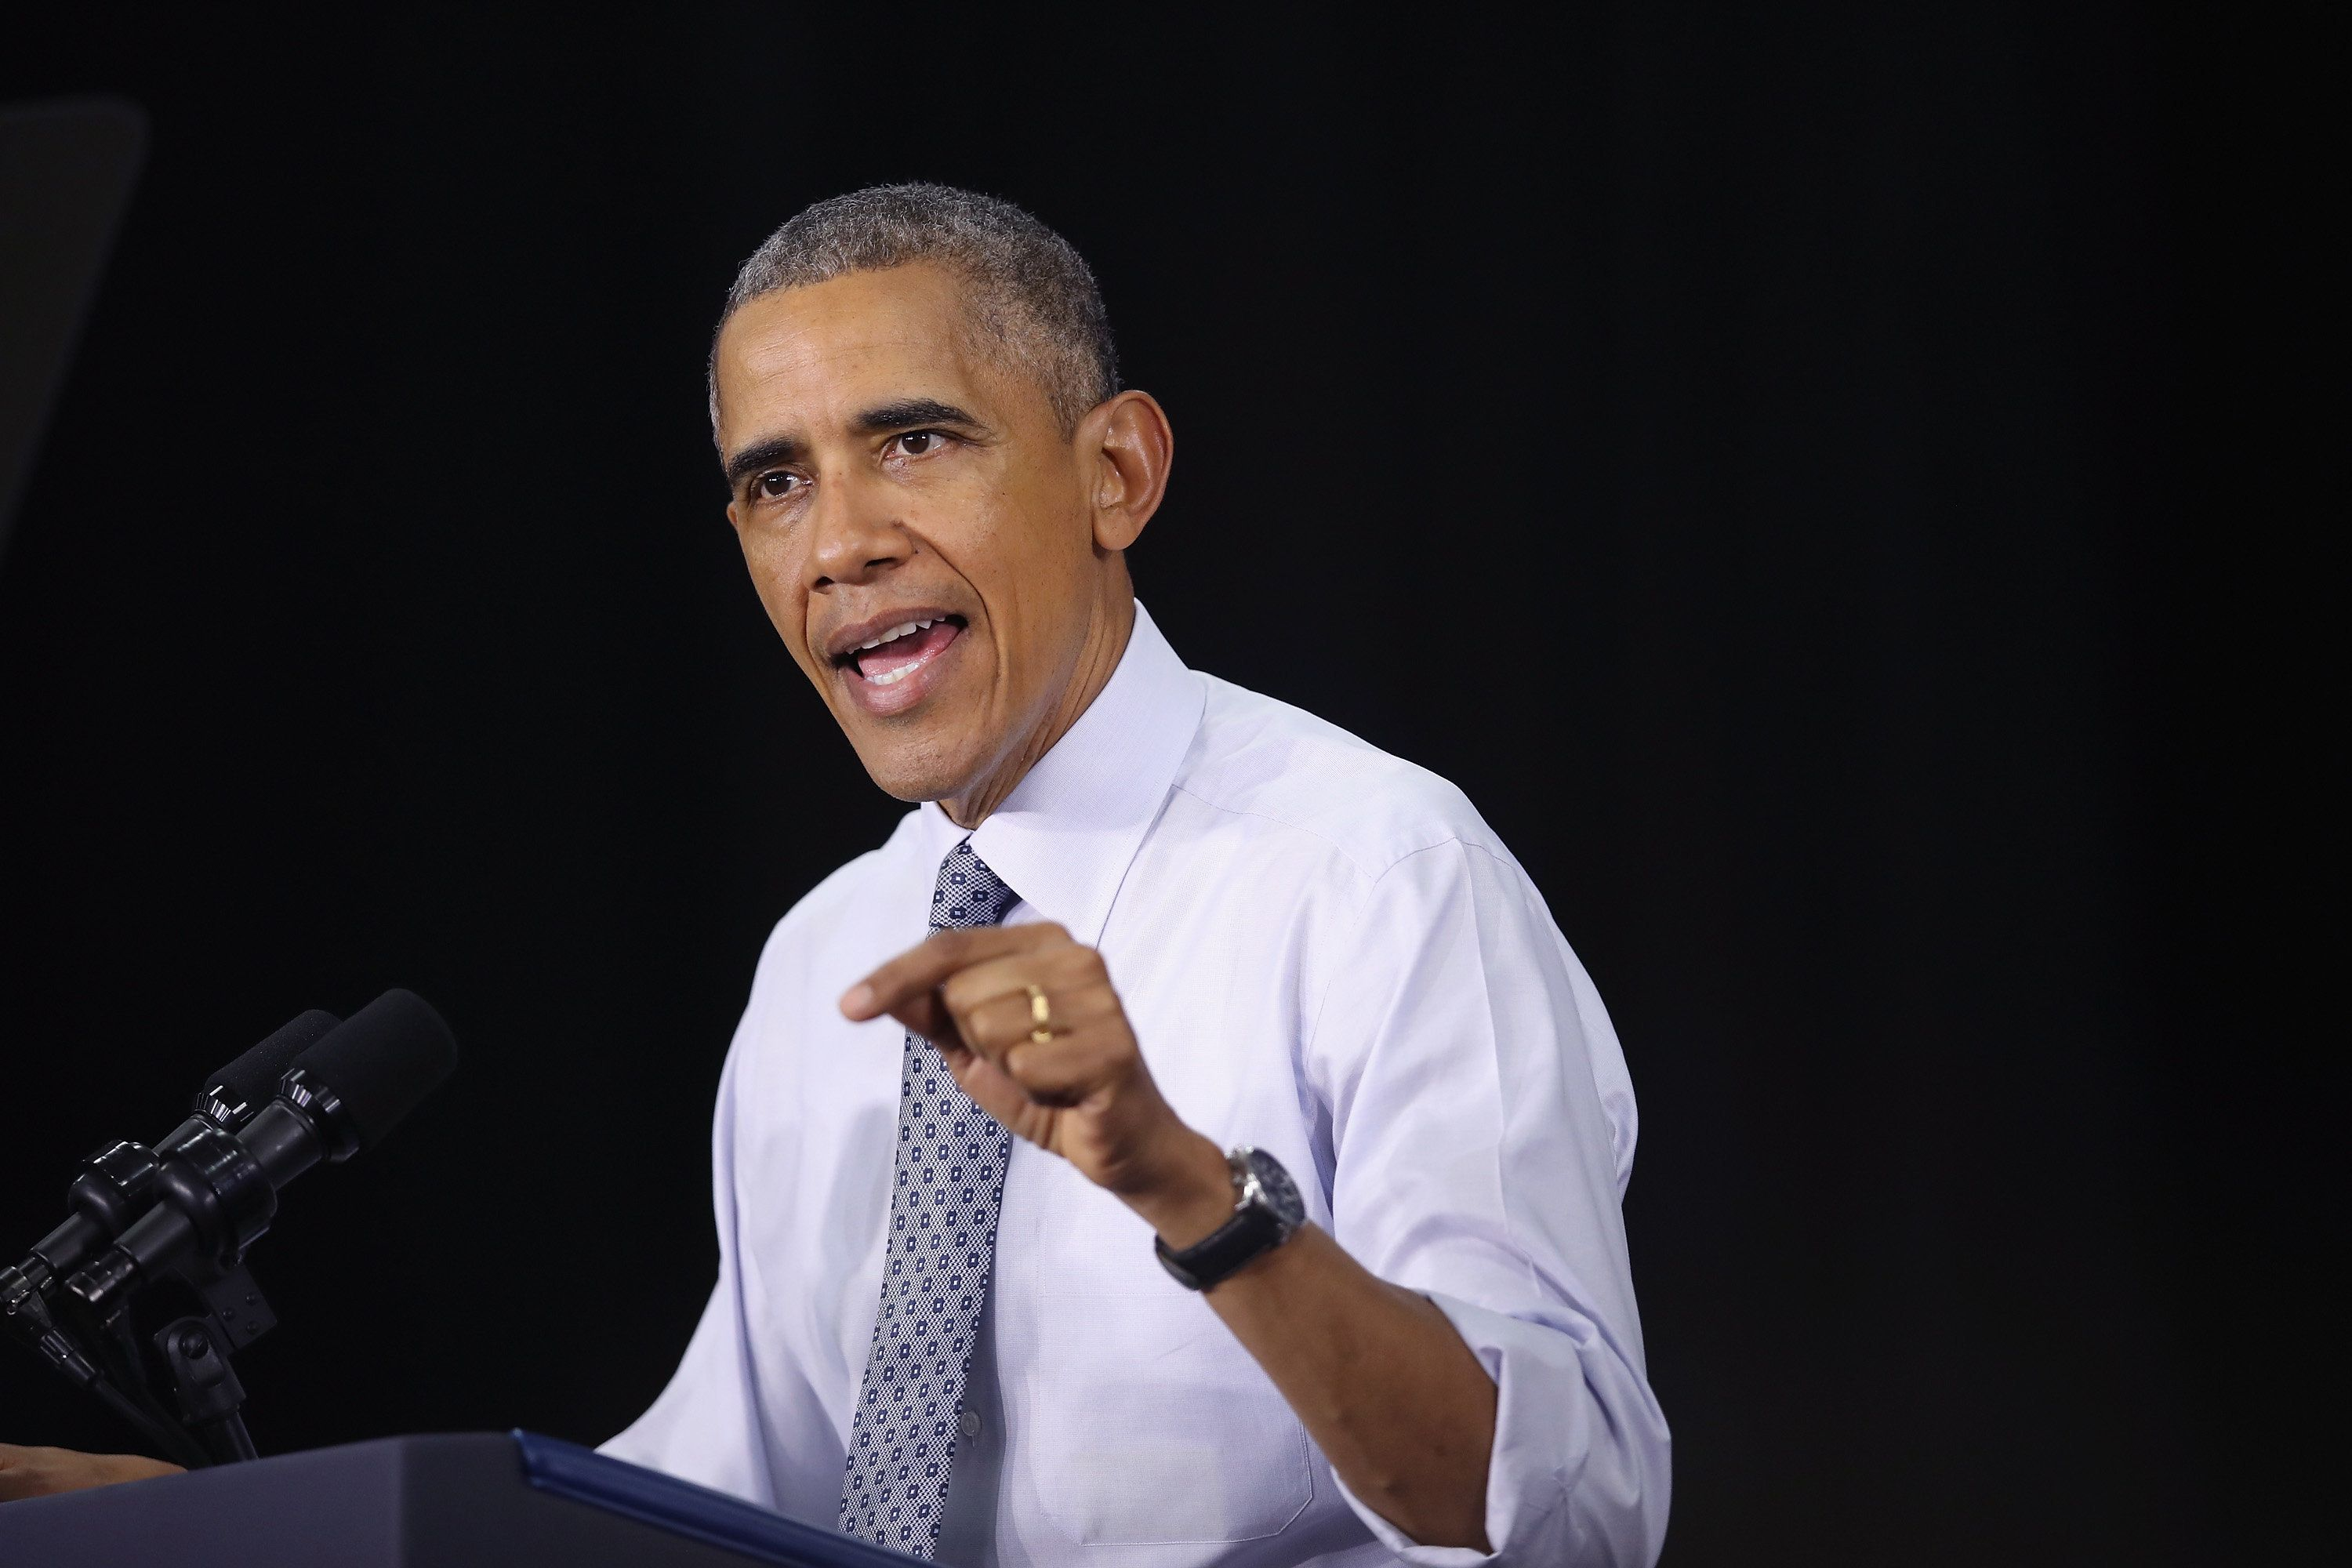 President Barack Obama speaks in Elkhart, Indiana, on June 1, 2016. The midwestern town has experienced one of the country's